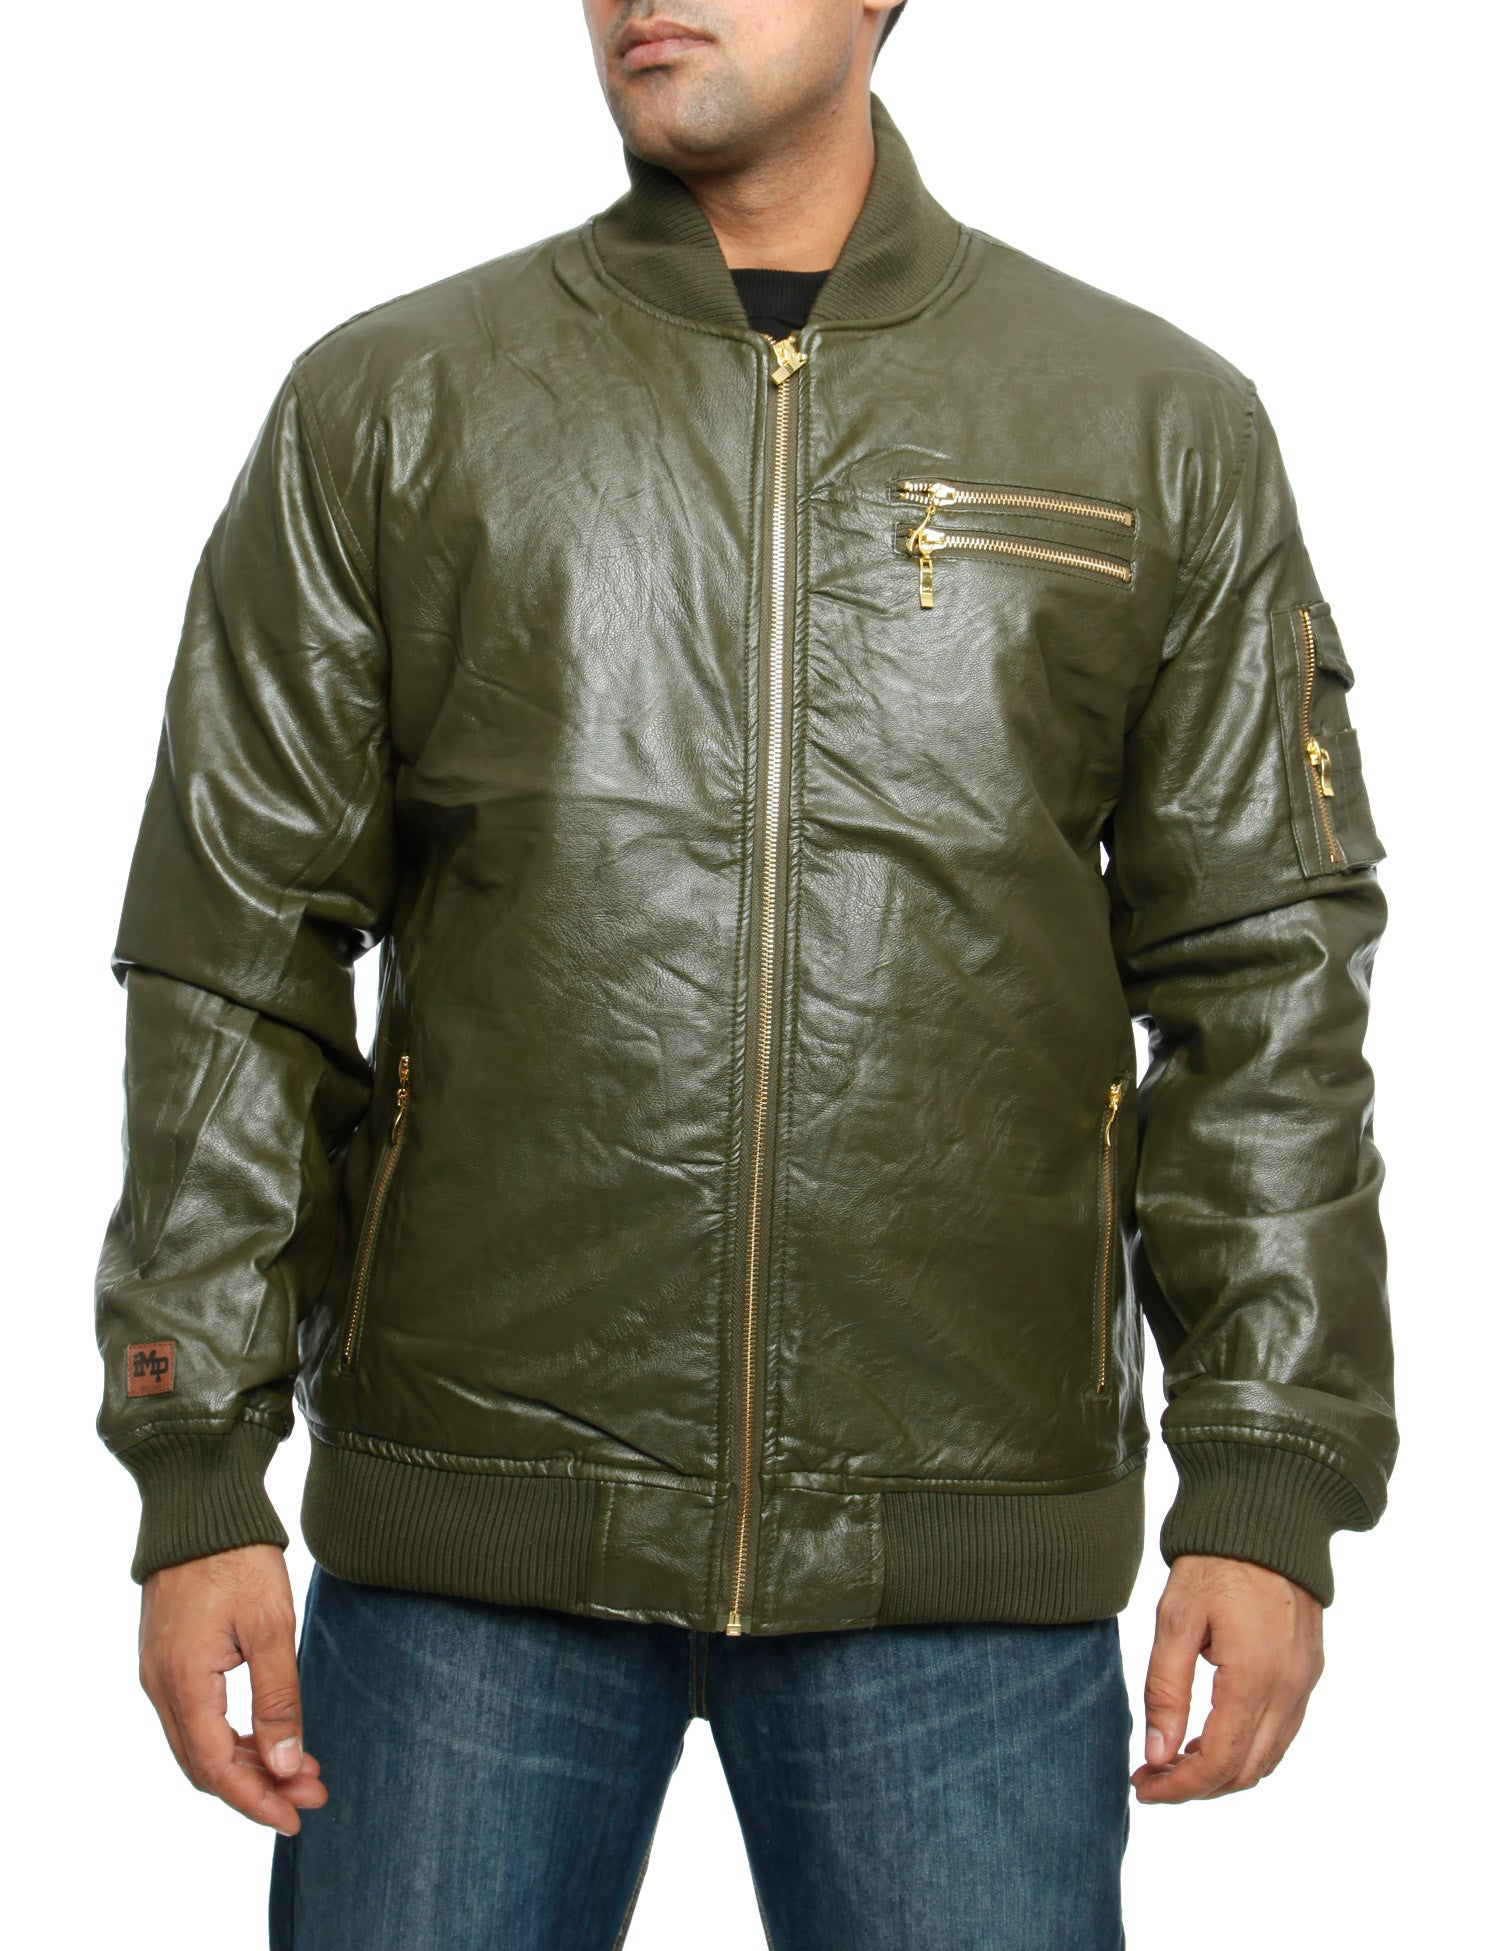 Imperious JK11 Padded Jacket Olive Green